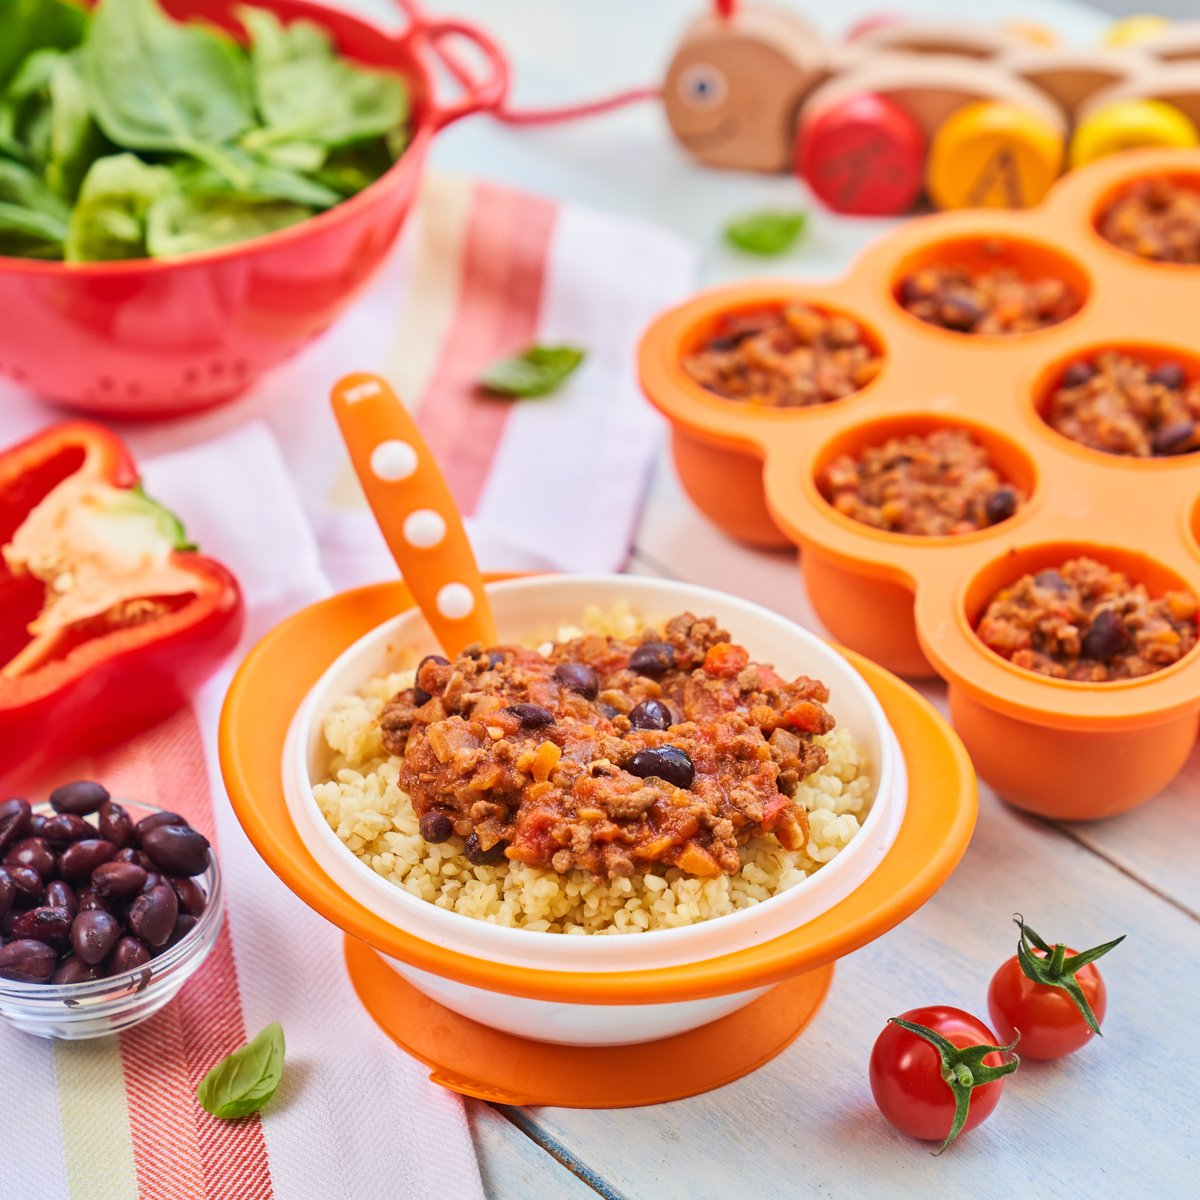 A great recipe for all the family Annabel's easy peasy chilli con carne is the perfect weeknight dinner. ⁠ ~⁠ Simply batch cook and freeze to take out when you need (great for times like these). Check out the recipe here 👉https://t.co/DHjPmH5dhH https://t.co/yHhuvF9bmt